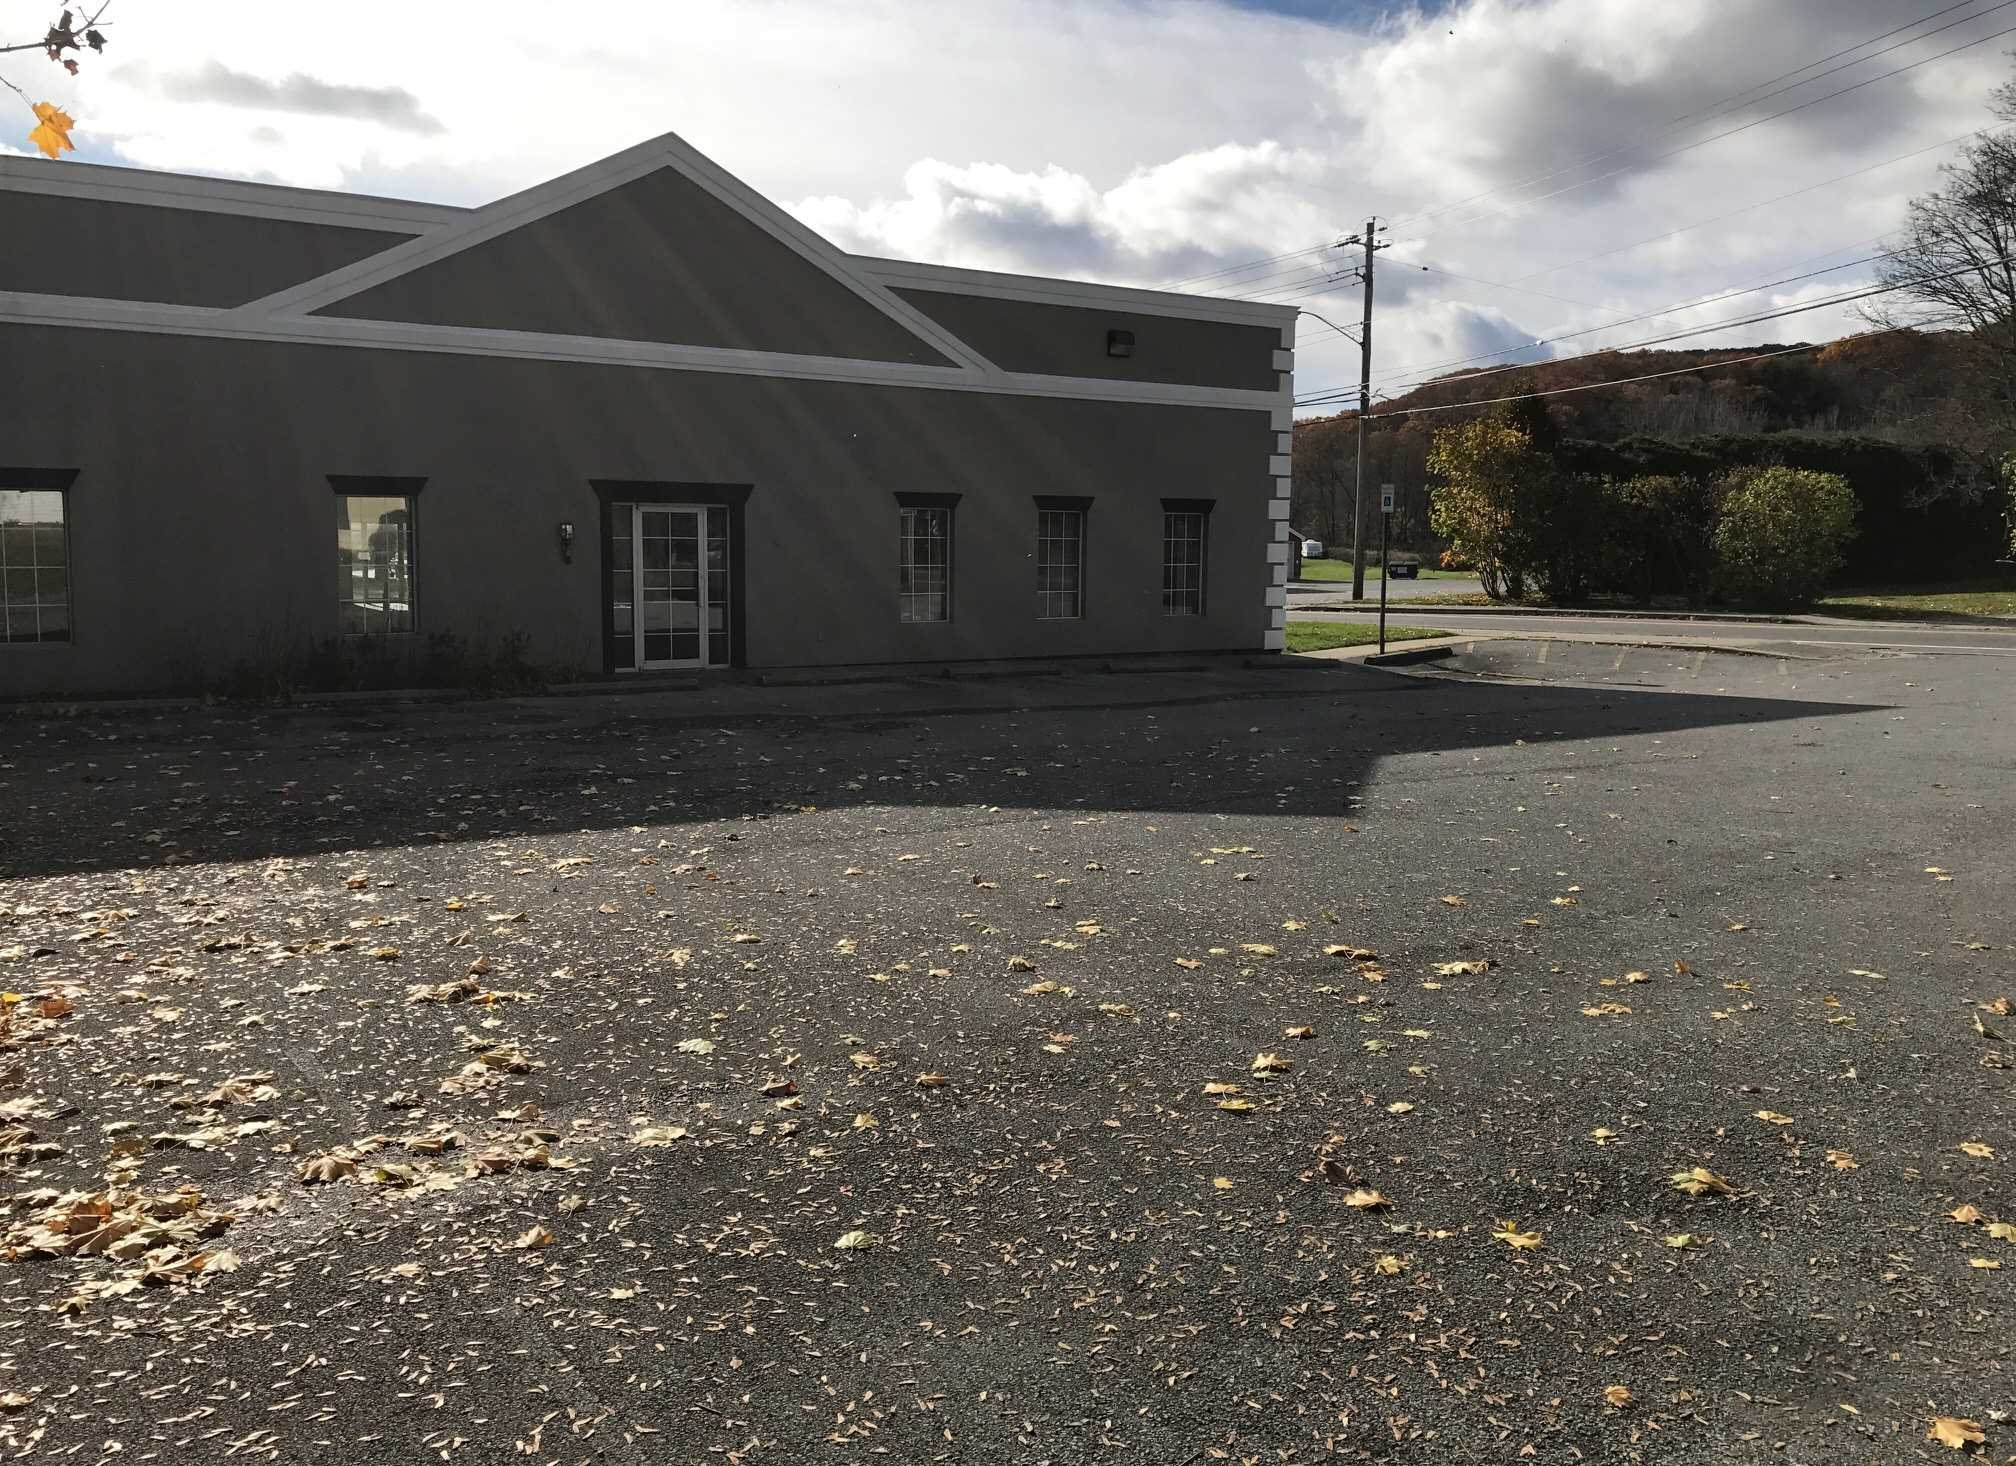 Additional photo for property listing at 3140 ROUTE 22 3140 ROUTE 22 Dover Plains, New York 12522 United States